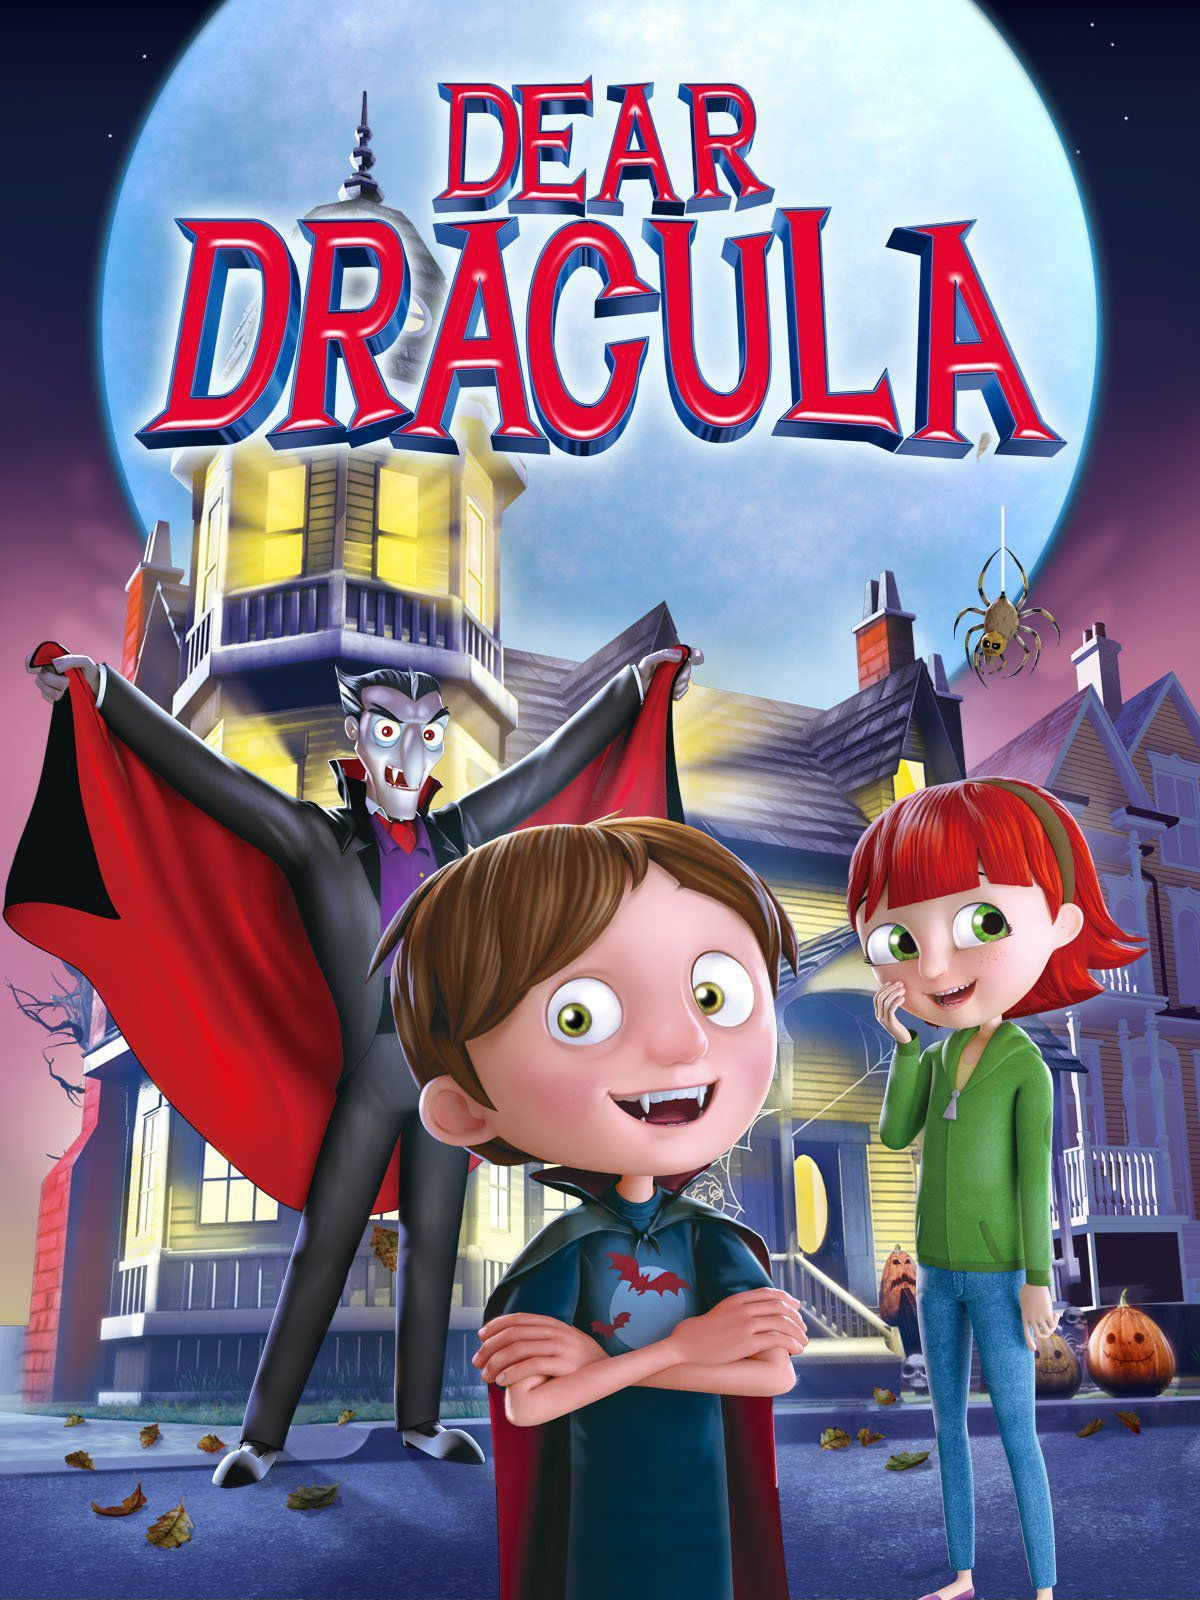 Halloween movies on netflix that wont give kids the